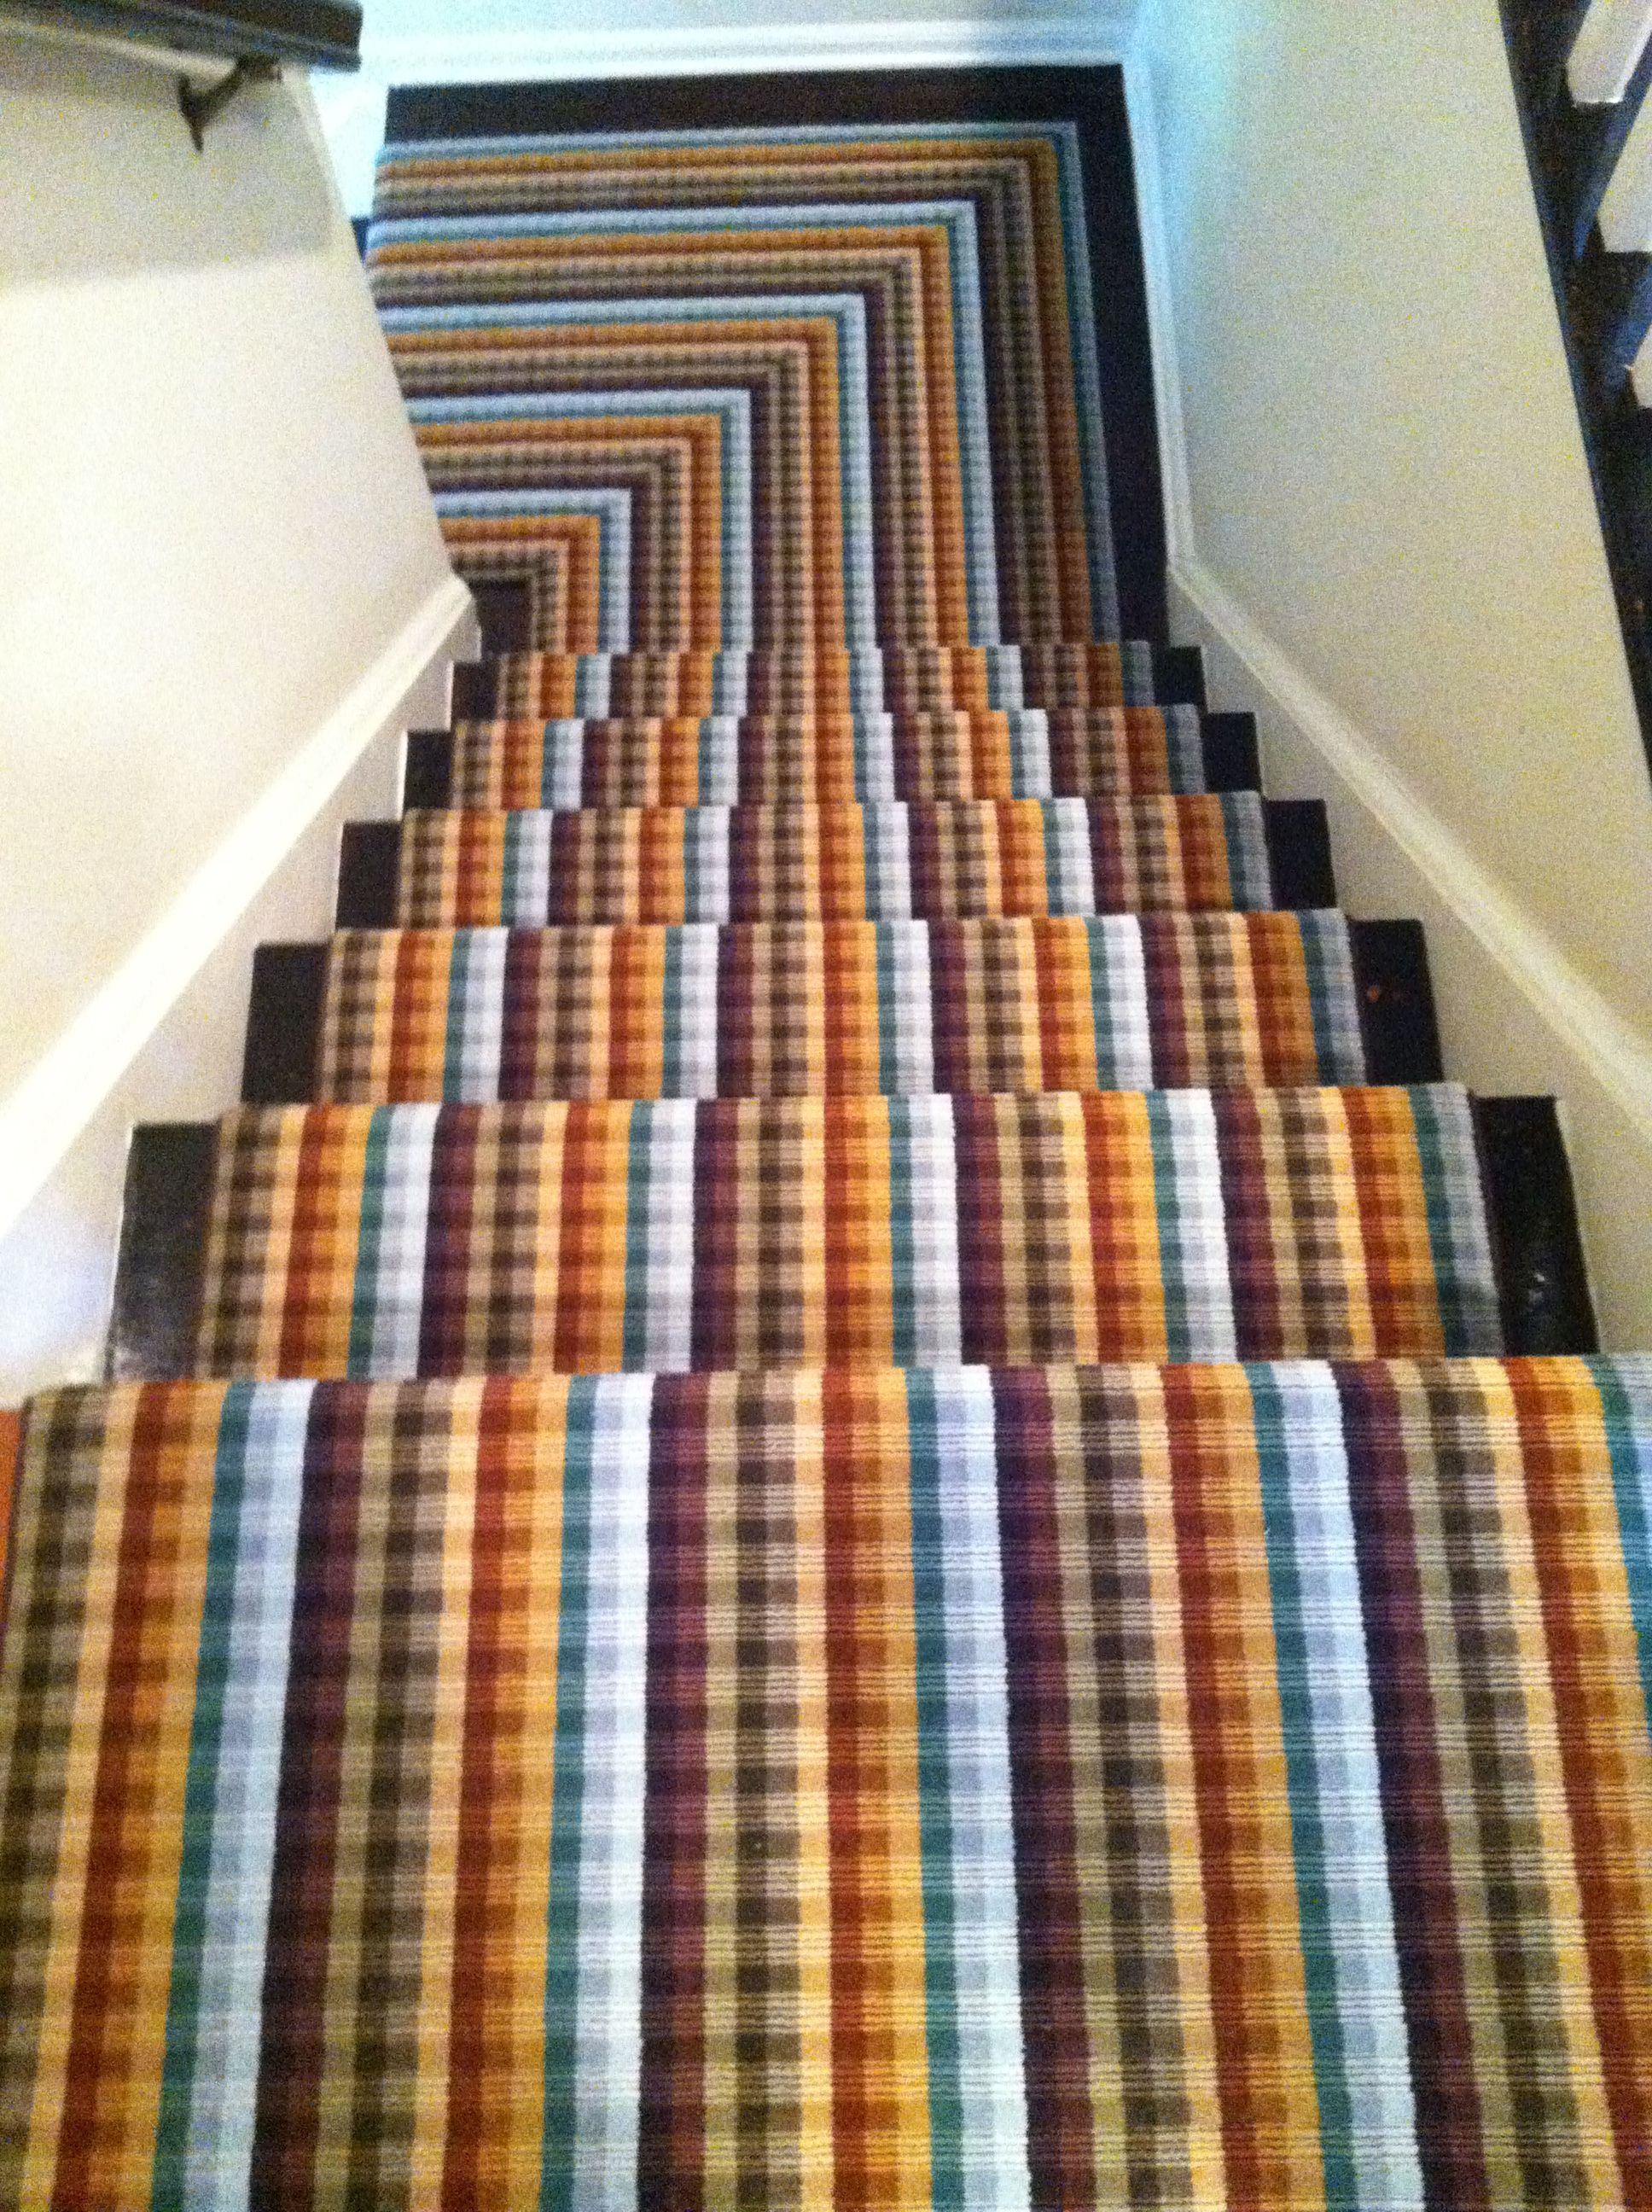 newest missoni carpet  carpet and floors to die for  pinterest  - newest missoni carpet